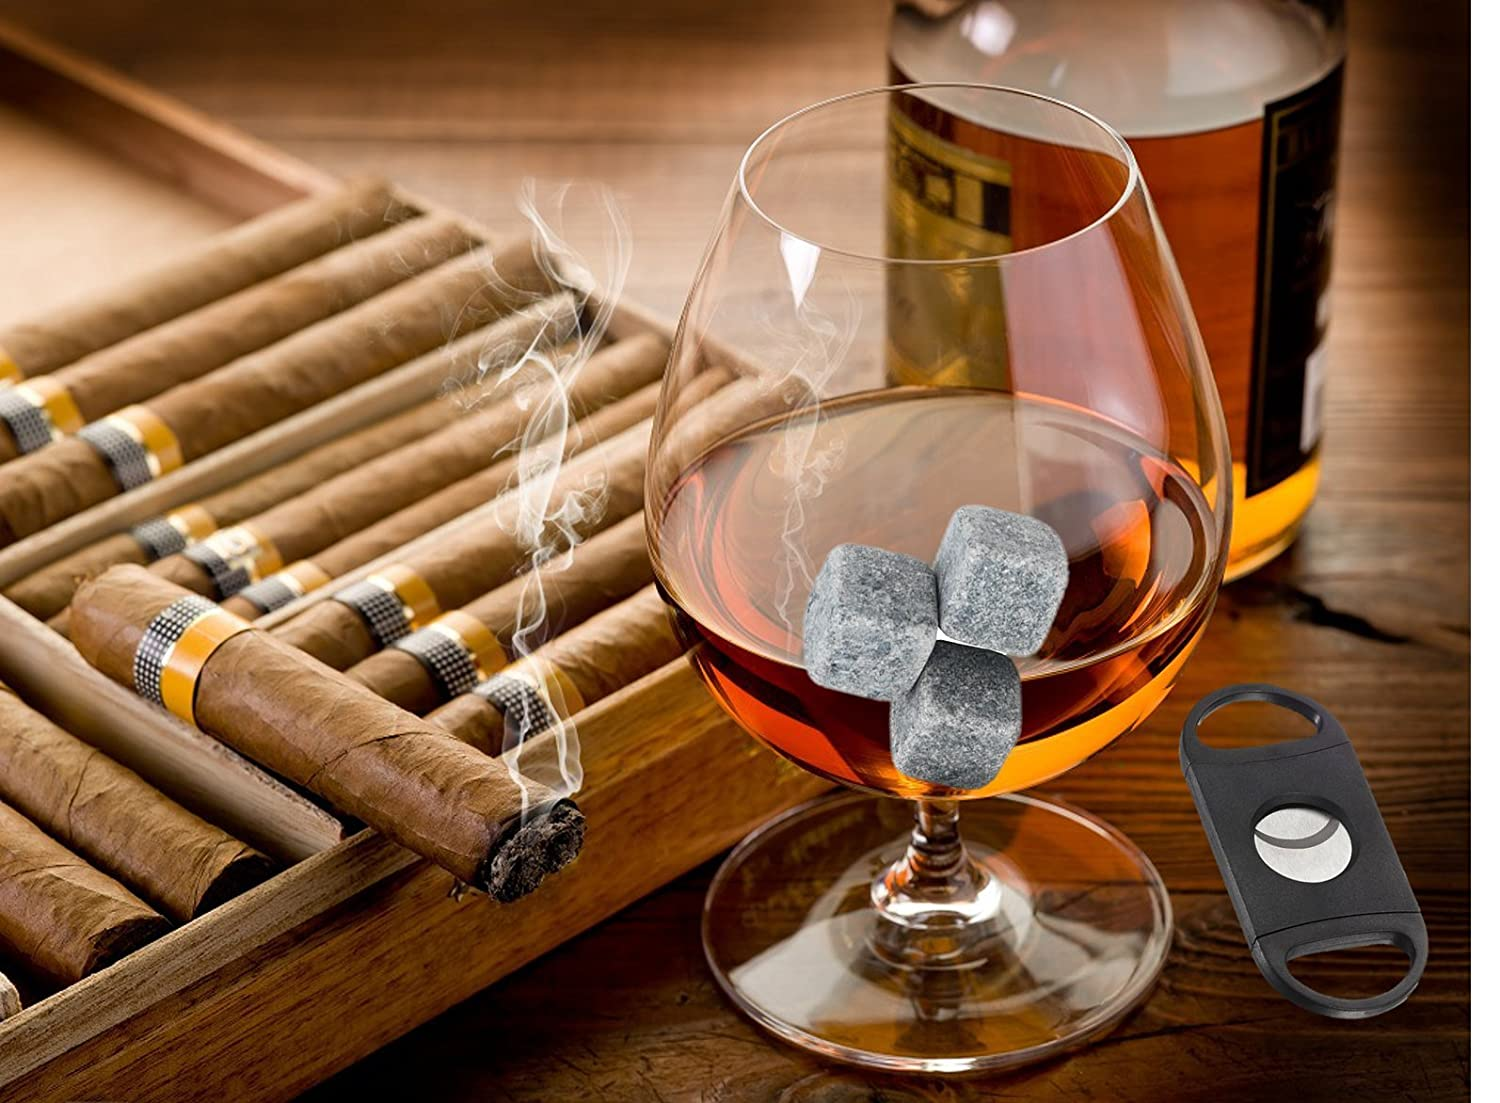 Ramini Brands Premium Whiskey Cooling Stones 9 Piece Set BEST WHISKEY Cooling STONES for Classic Gentlemen Connoisseurs Prevents Watering Down or Diluting